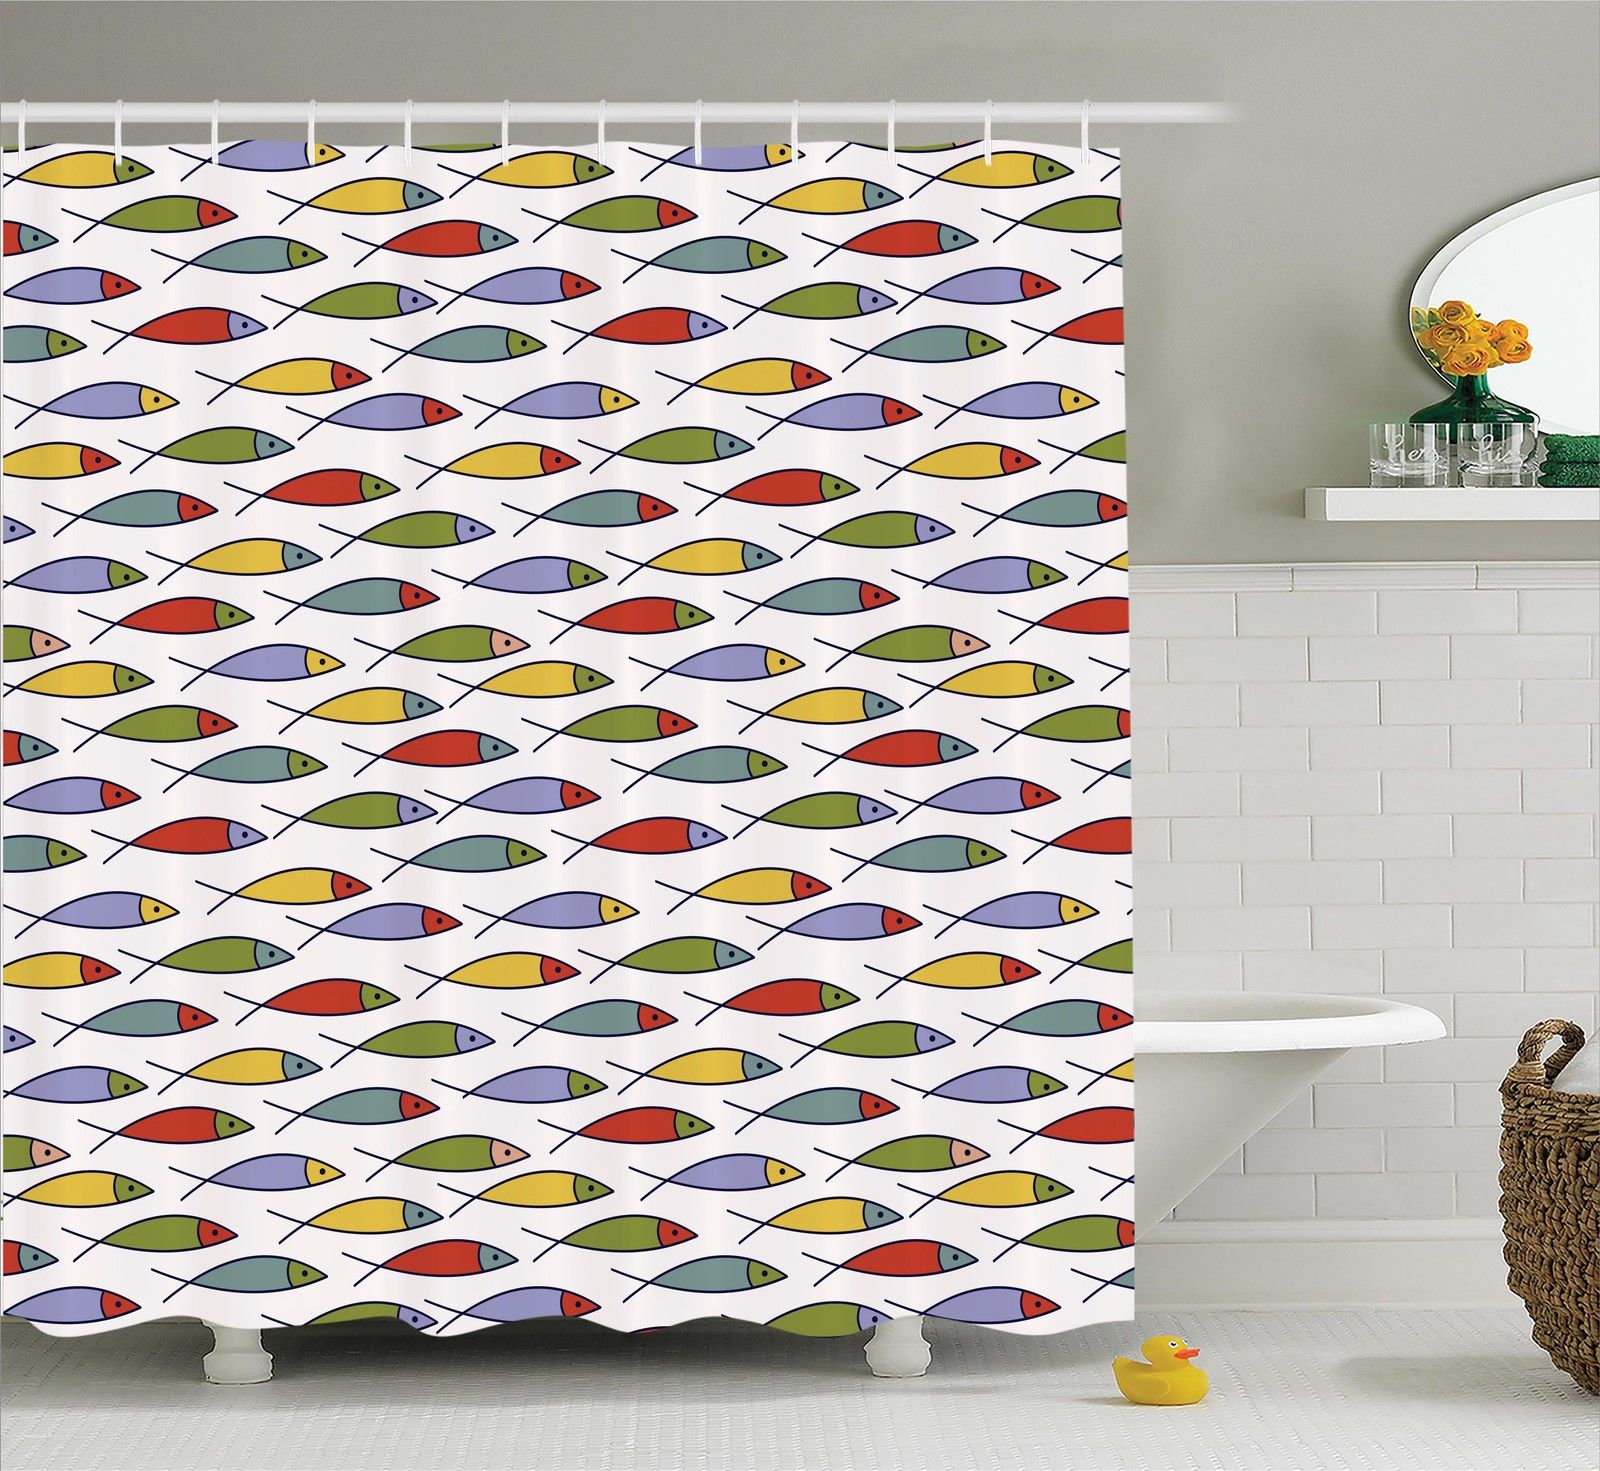 House Decor  Simplistic Floating Fish Forms In A Row Cute Kids Cover Aquatic Underwater Animal Lines Design, Bathroom Accessories, 69W X 84L Inches Extra Long, By Ambesonne